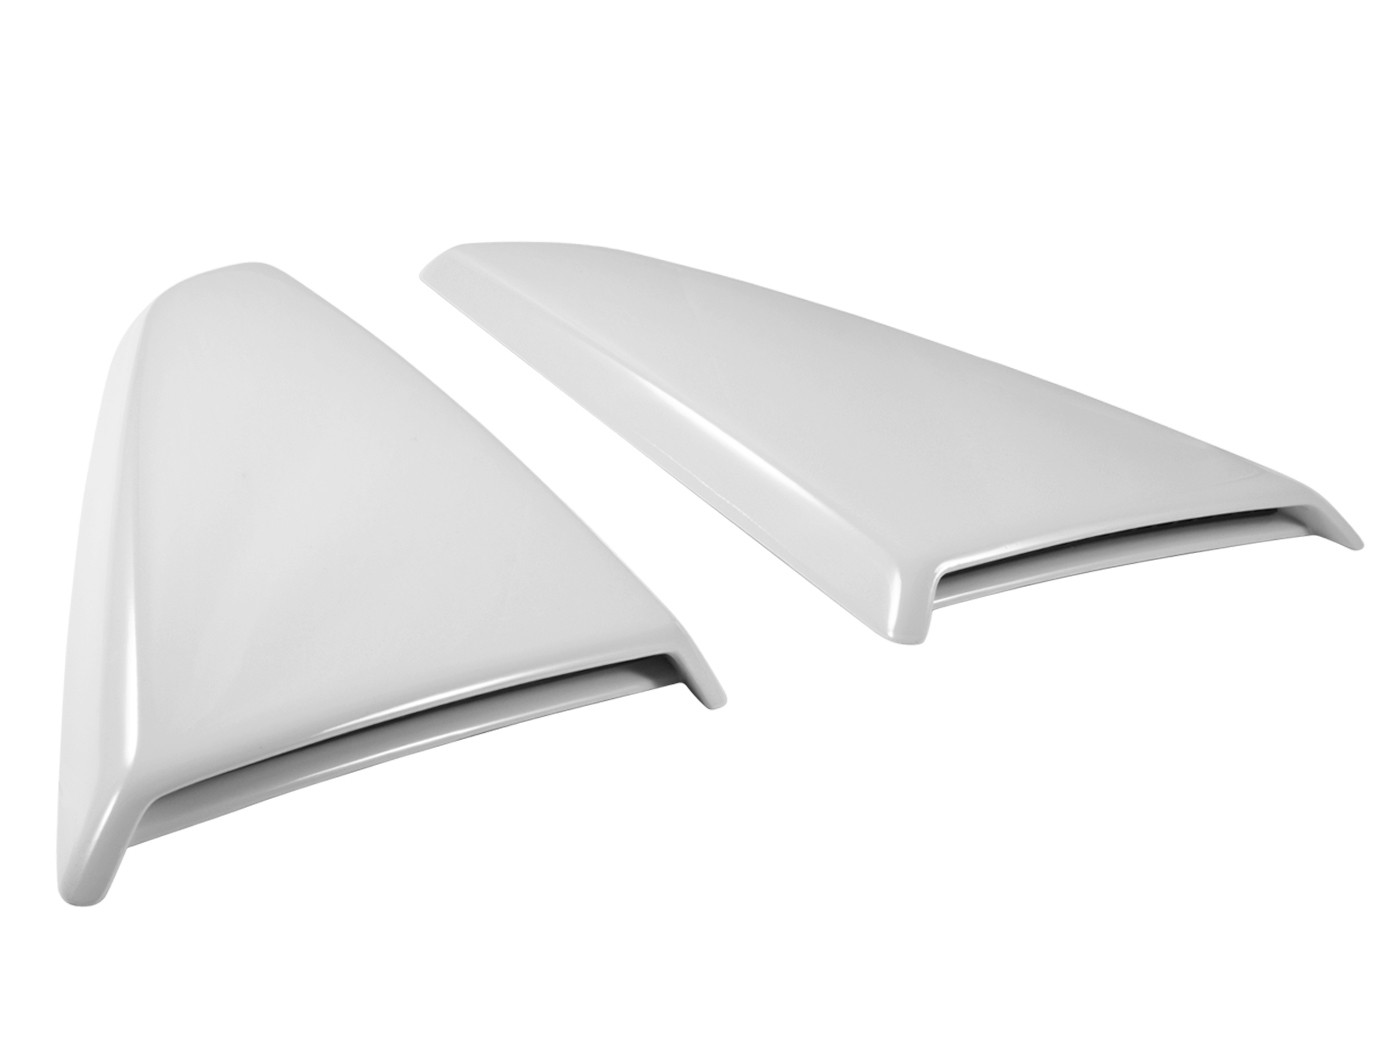 2015-2017 Mustang Genuine Ford Side Quarter Window Scoops Covers Oxford White YZ